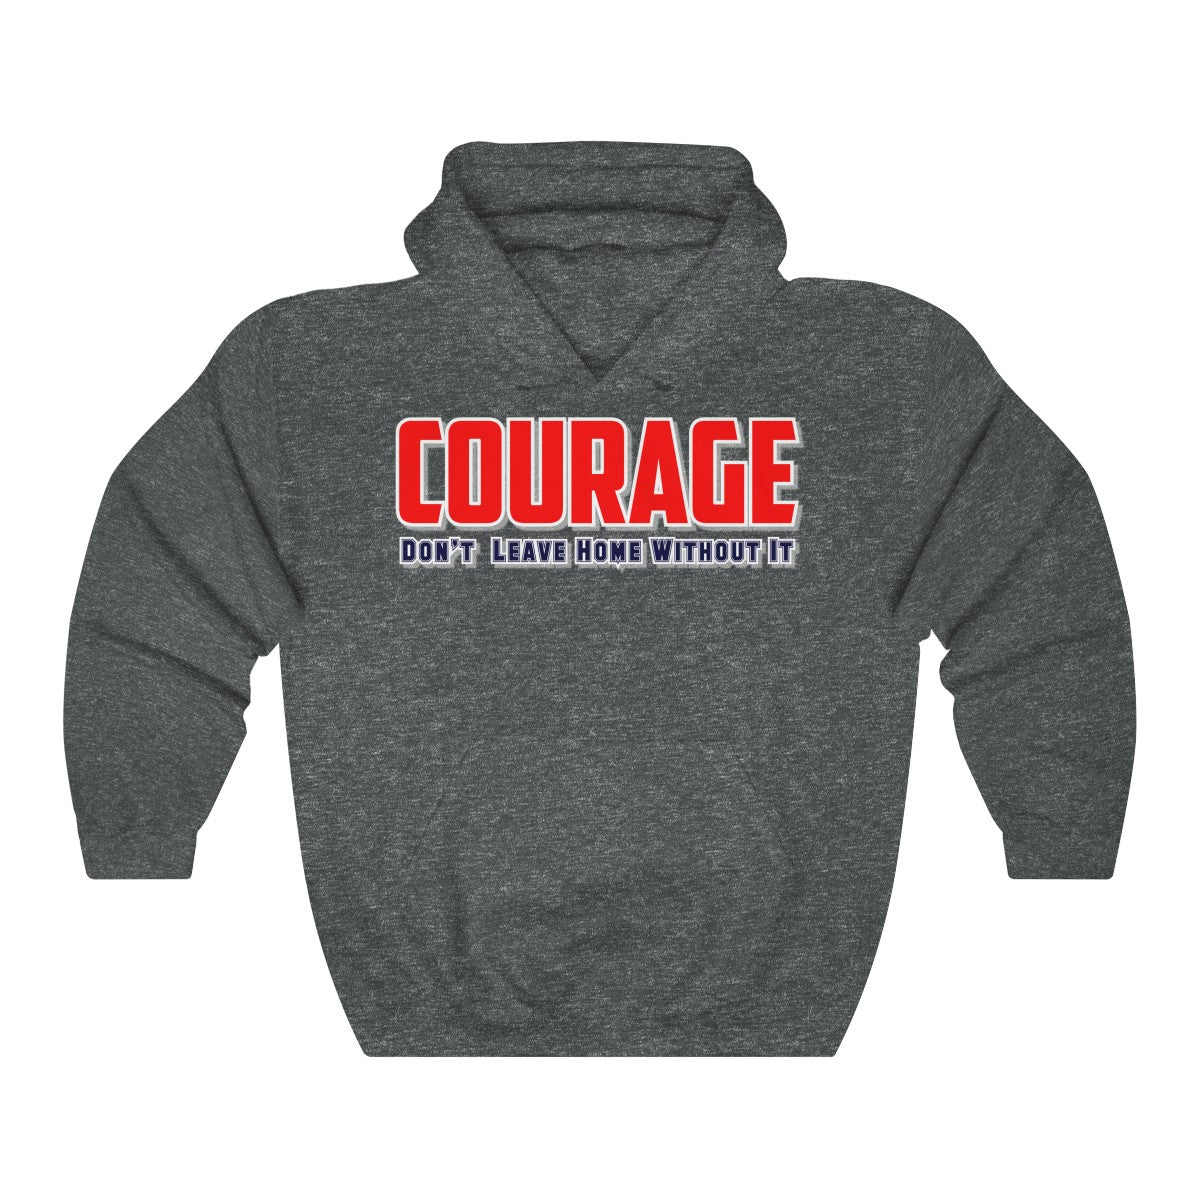 Unisex Heavy Blend™ Hooded Sweatshirt - Courage II